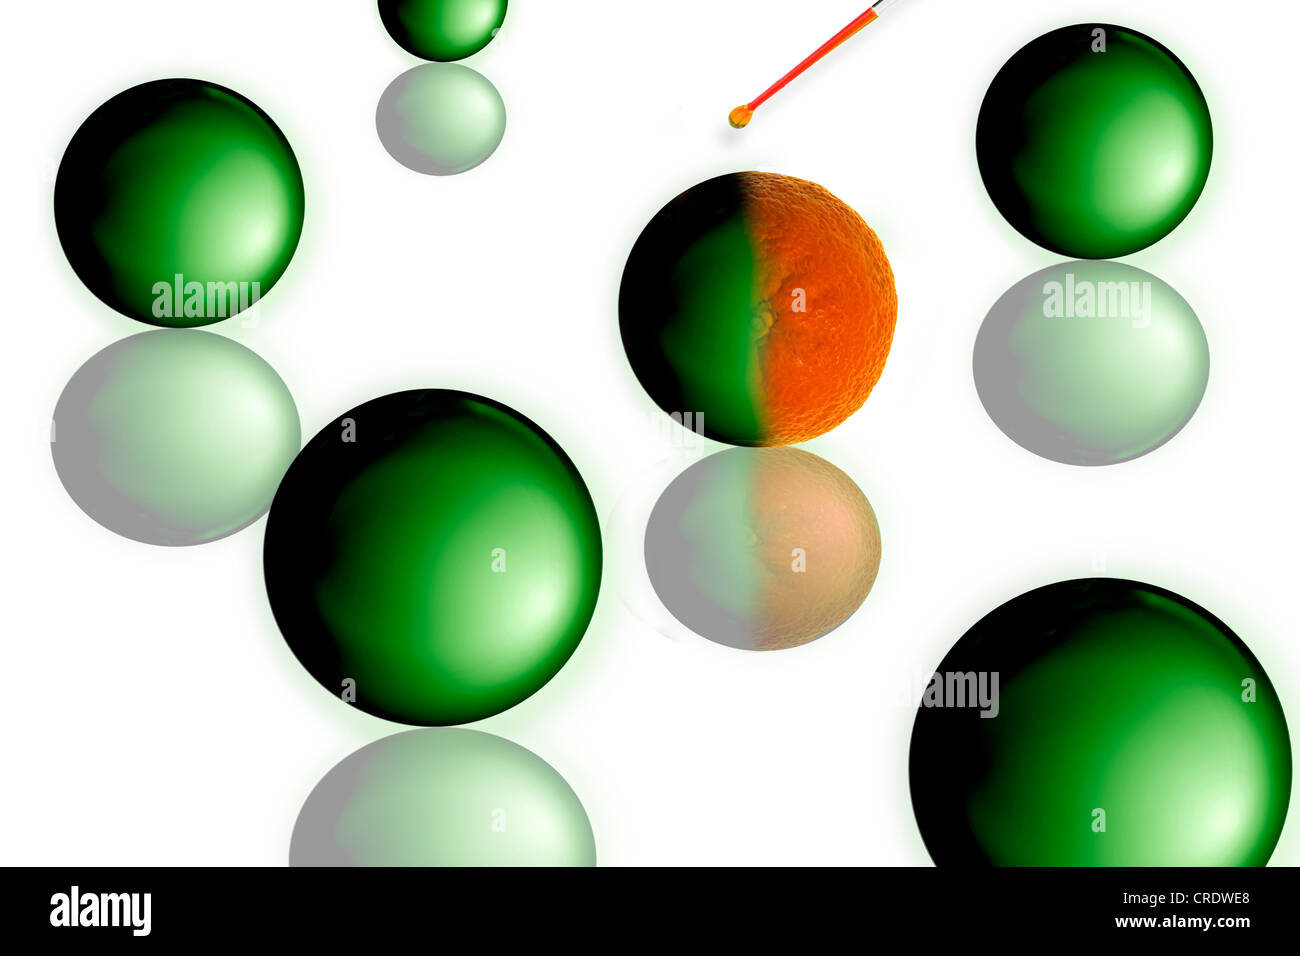 Droplet from a pipette hitting sphere and turning it into an orange - Stock Image